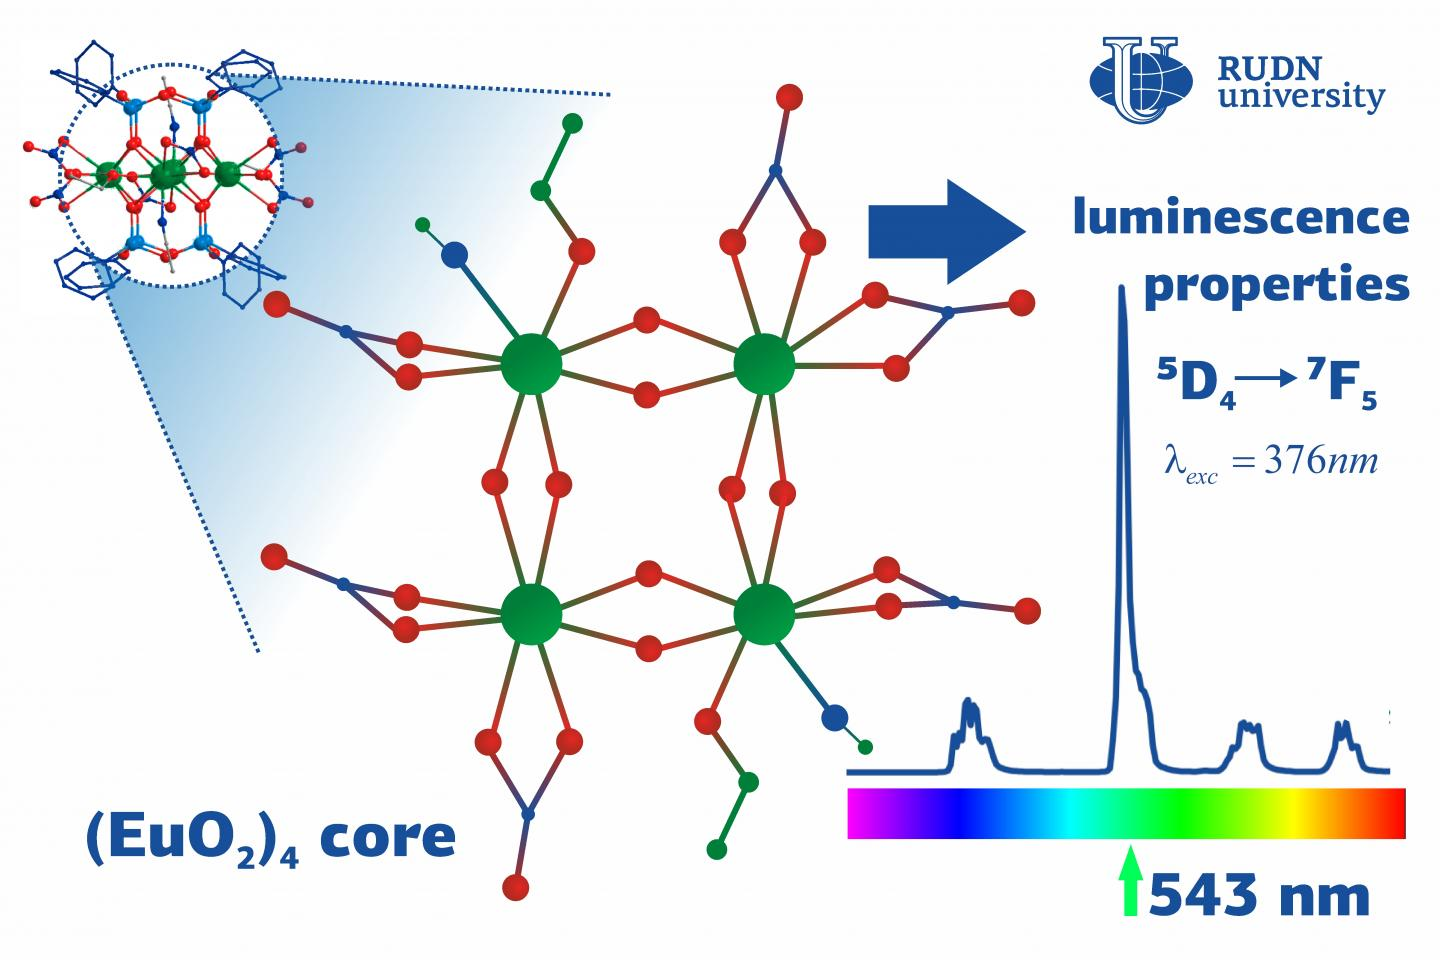 RUDN University Chemists Developed New Magnetic and Luminescent Lanthanide-Siloxane-Based Compounds